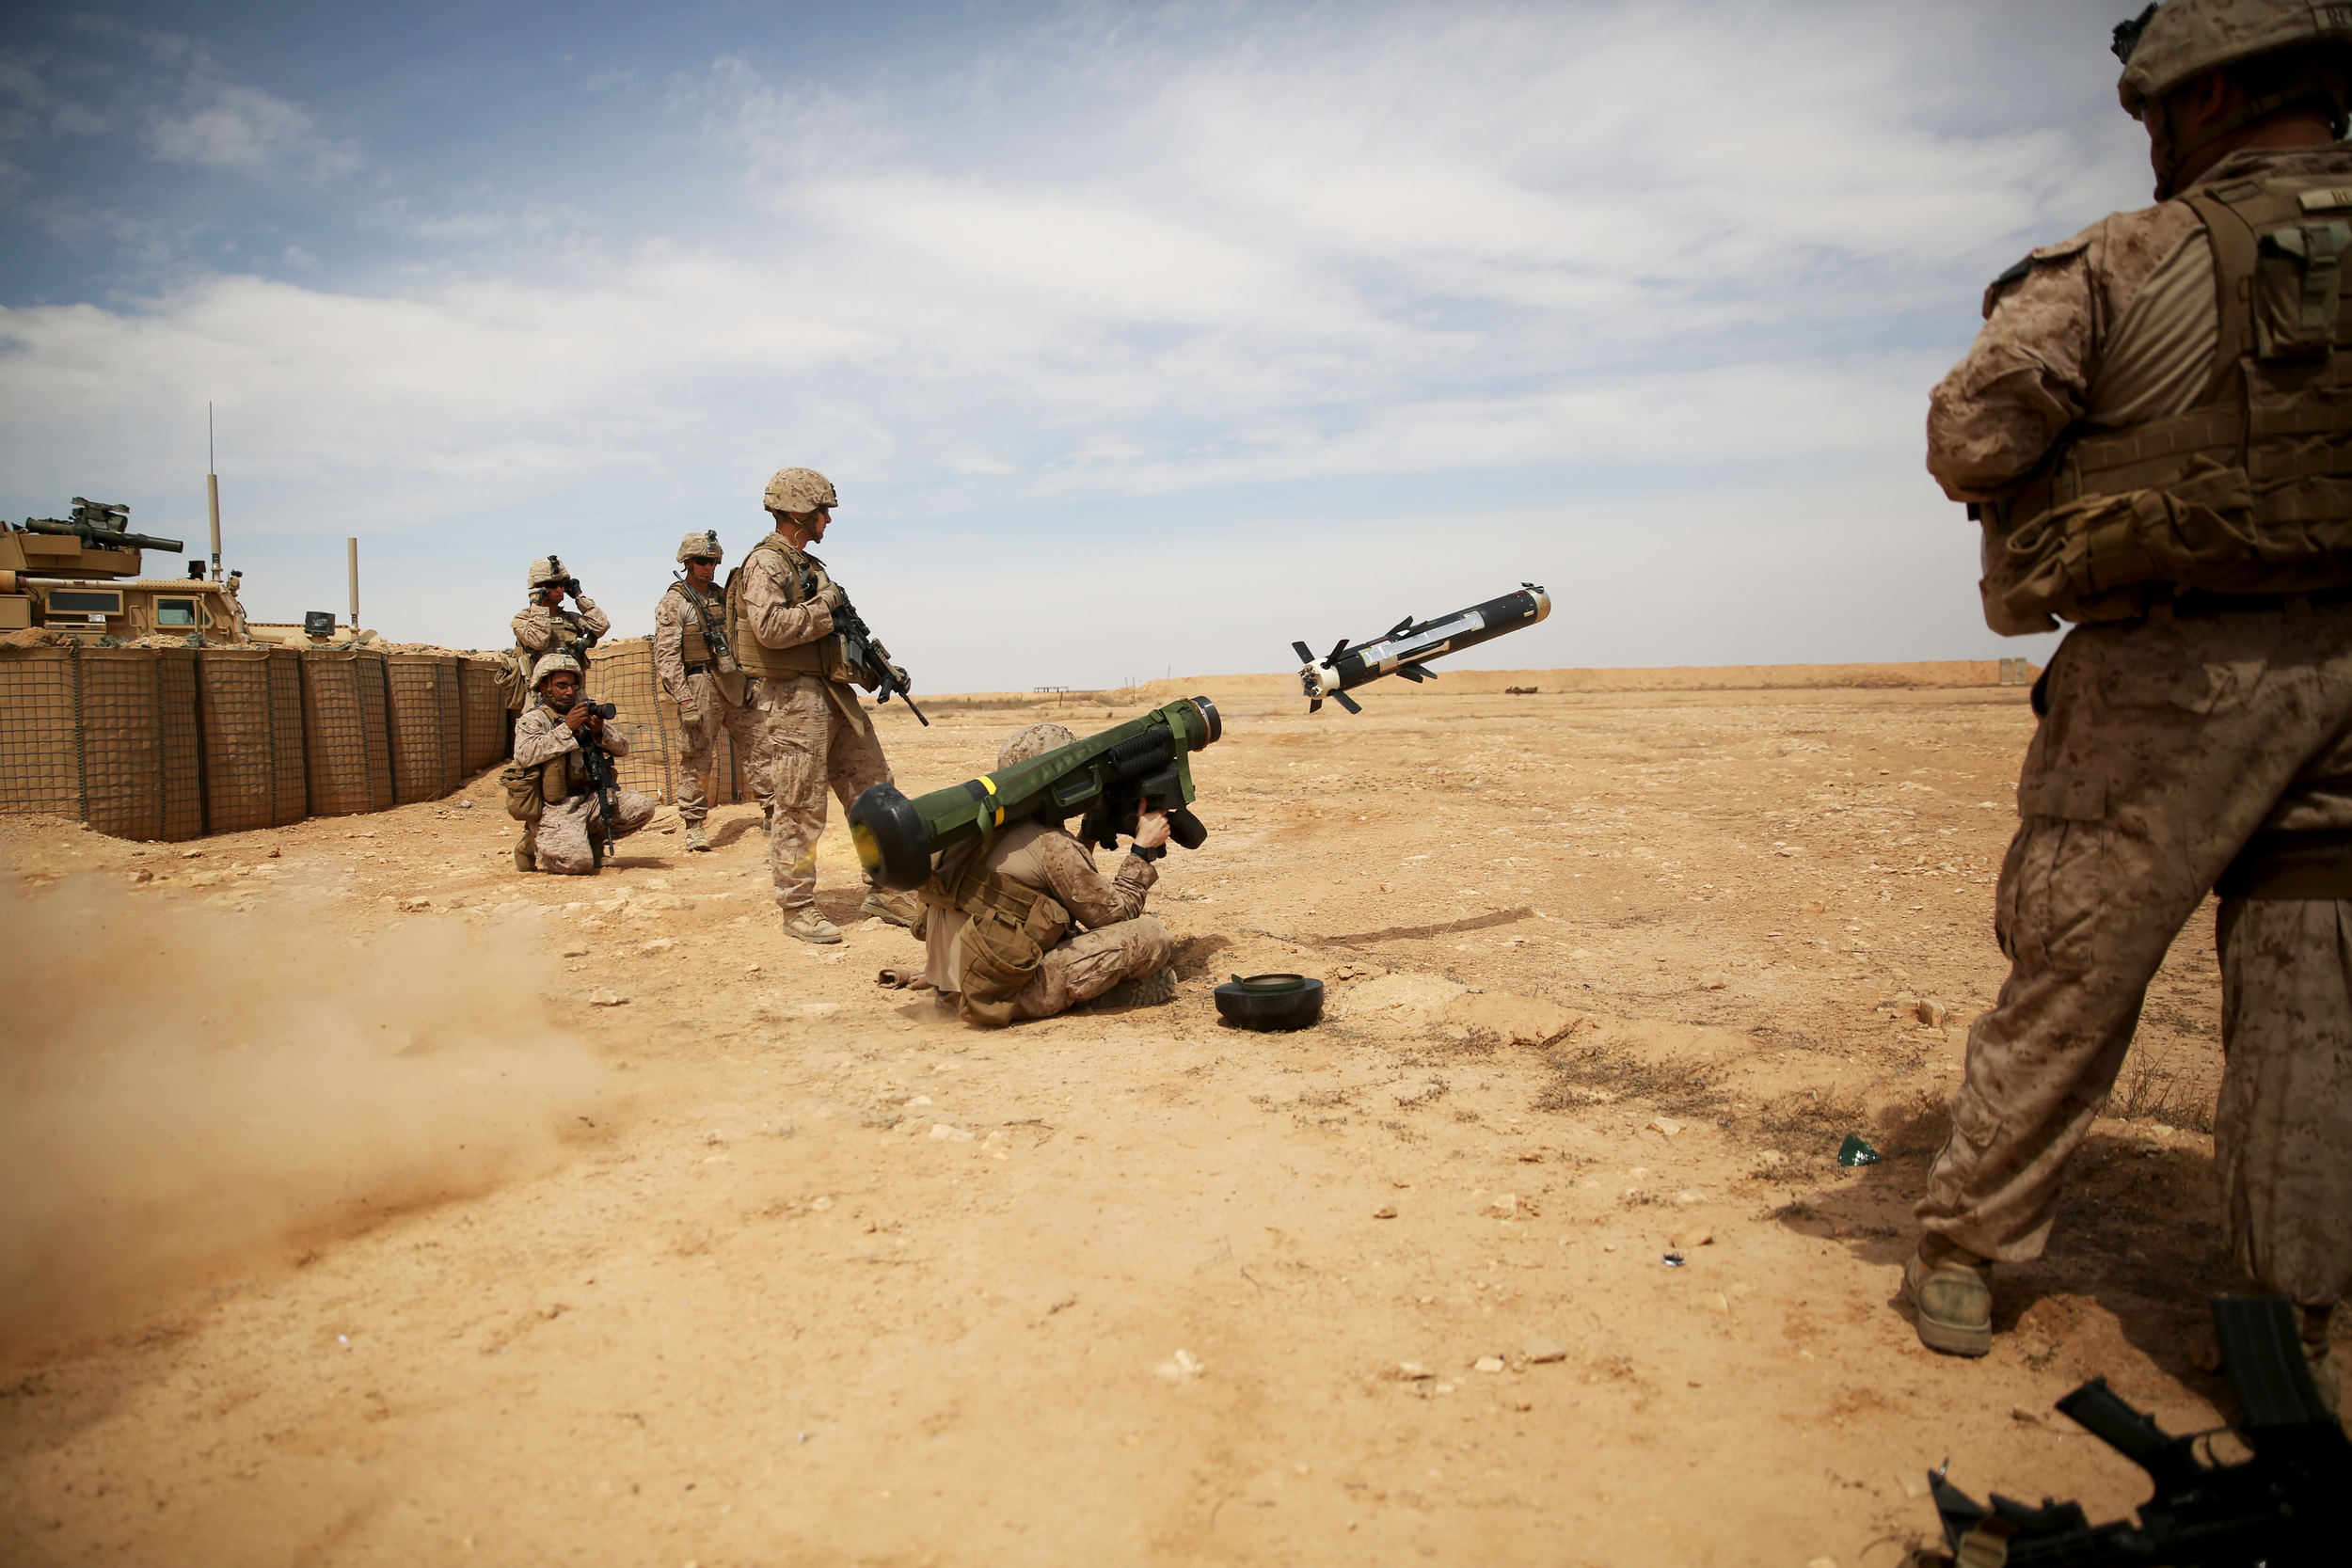 A Marine fires a FGM-148 Javelin missile at simulated enemy armored targets during a combined-arms training exercise at Al Asad Air Base, Iraq, April 3, 2015. | Photo by Cpl. Carson Gramley, United States Marine Corps.